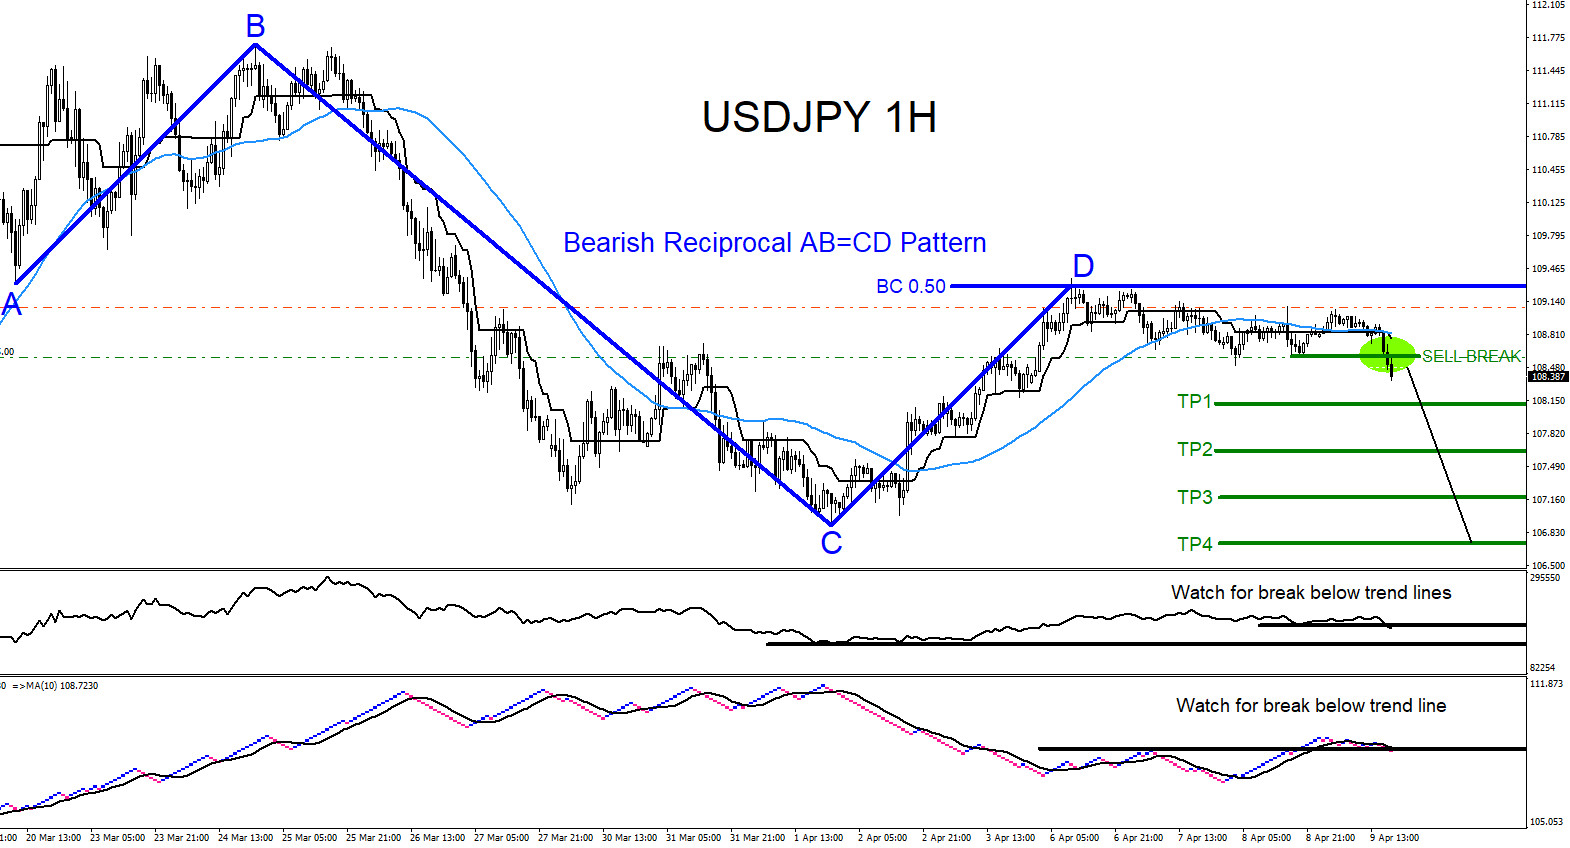 USDJPY : Calling the April 2020 Move Lower